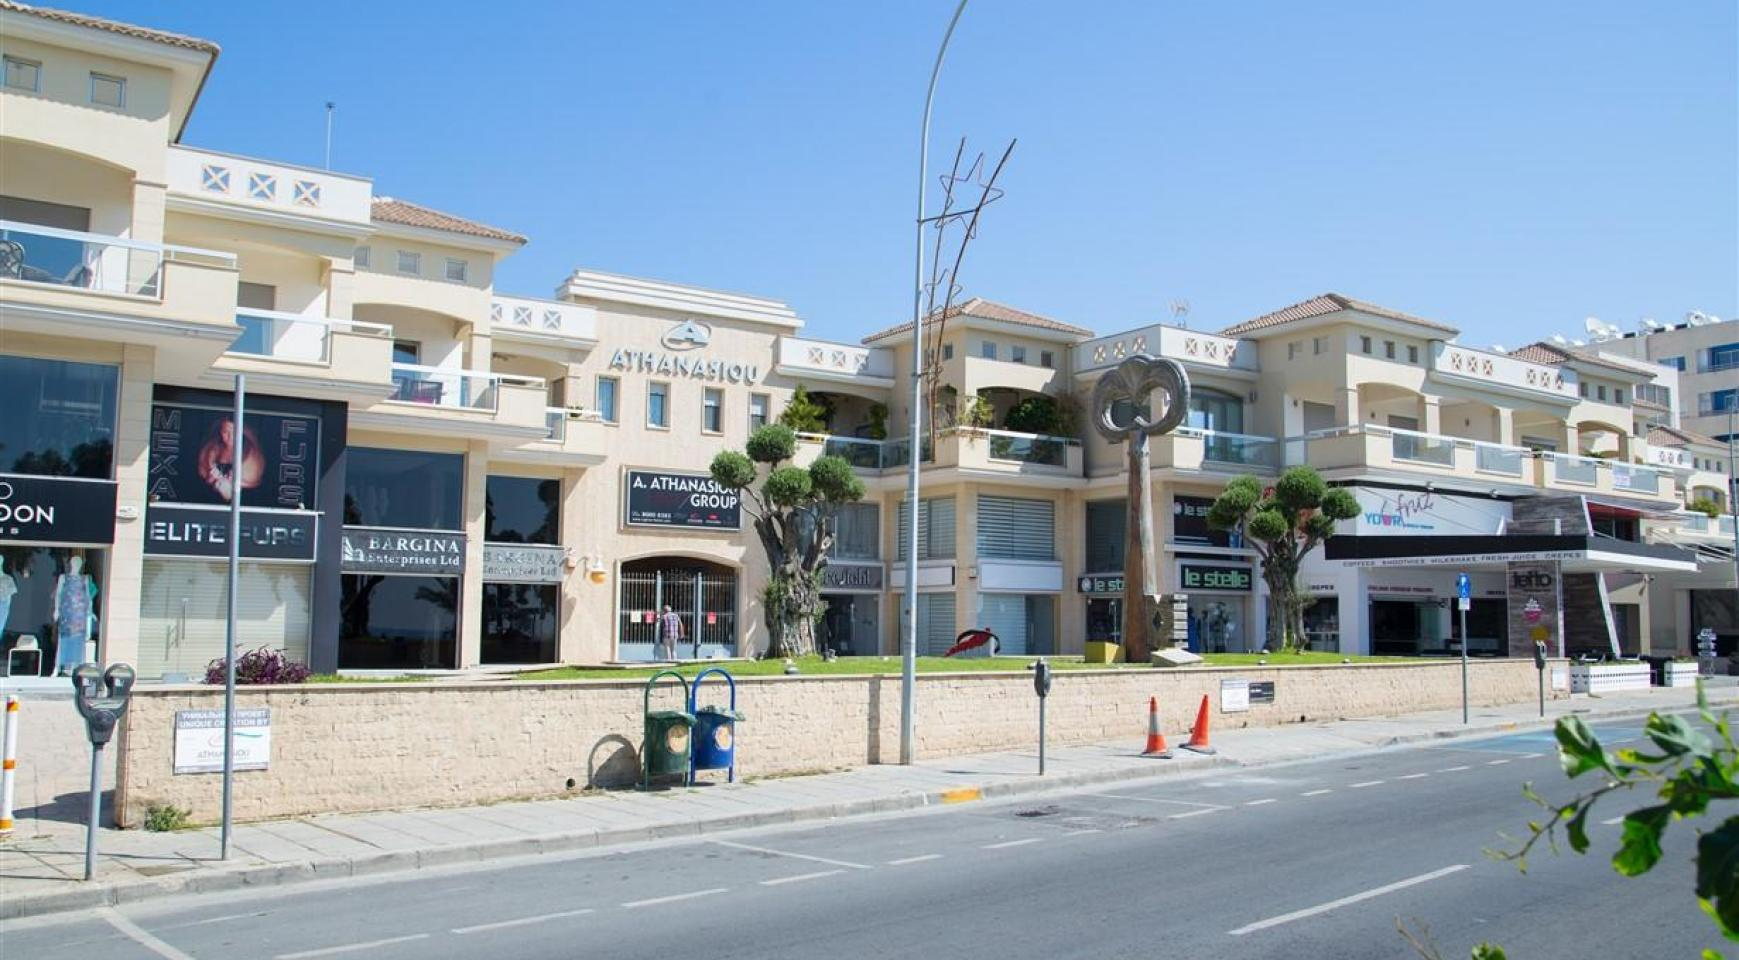 Αντίγραφο Luxury 2 Bedroom Apartment Mesogios Iris 304 in the Tourist area near the Beach - 41